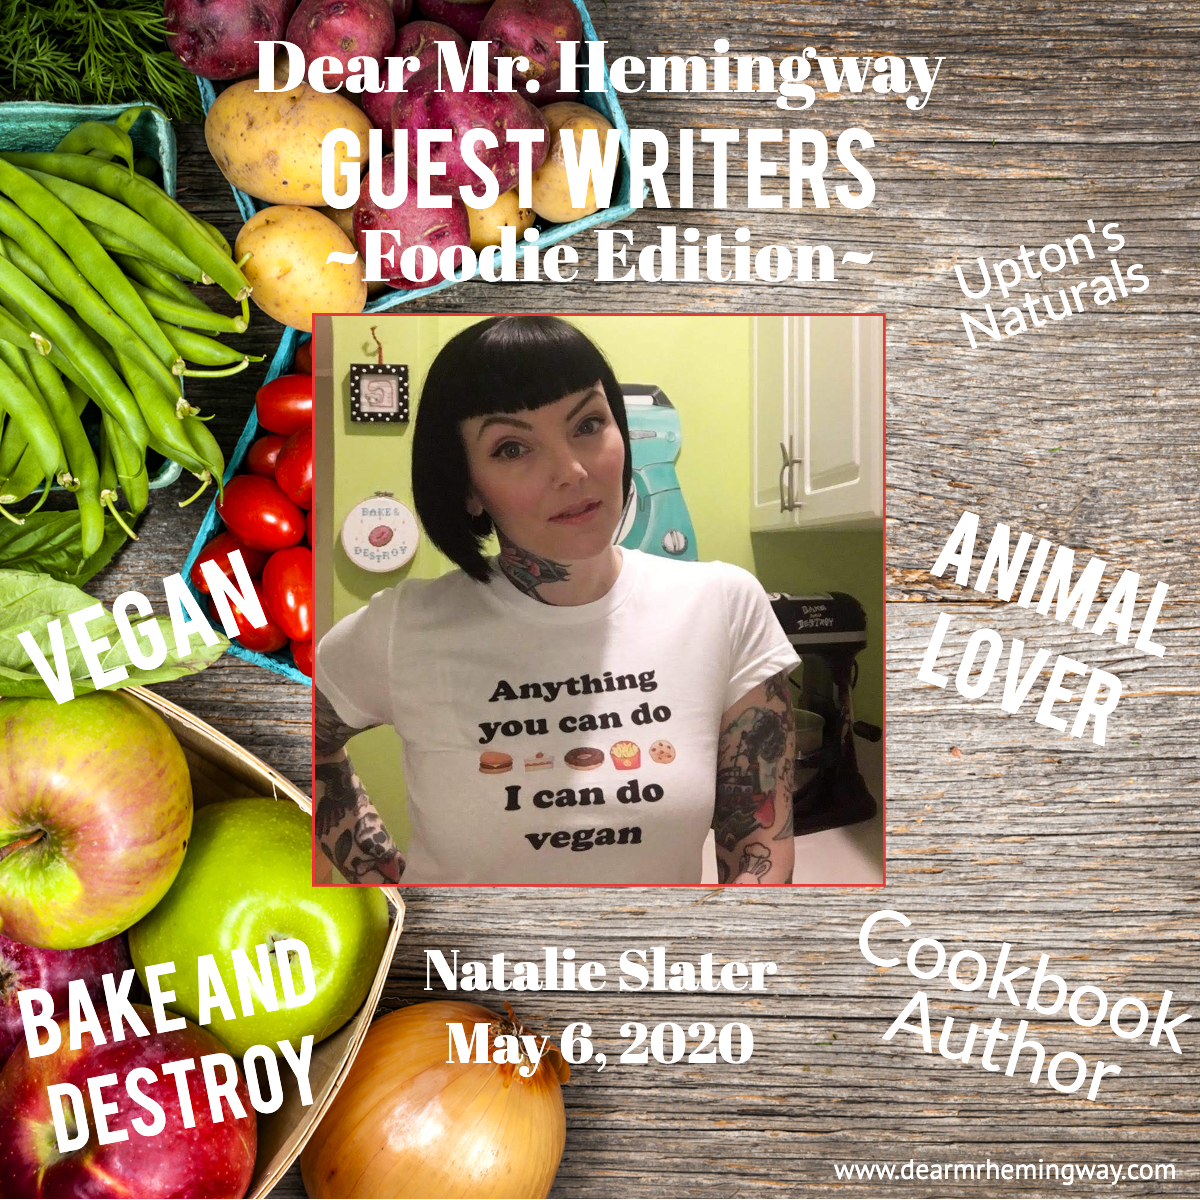 Natalie Slater, Foodie Author